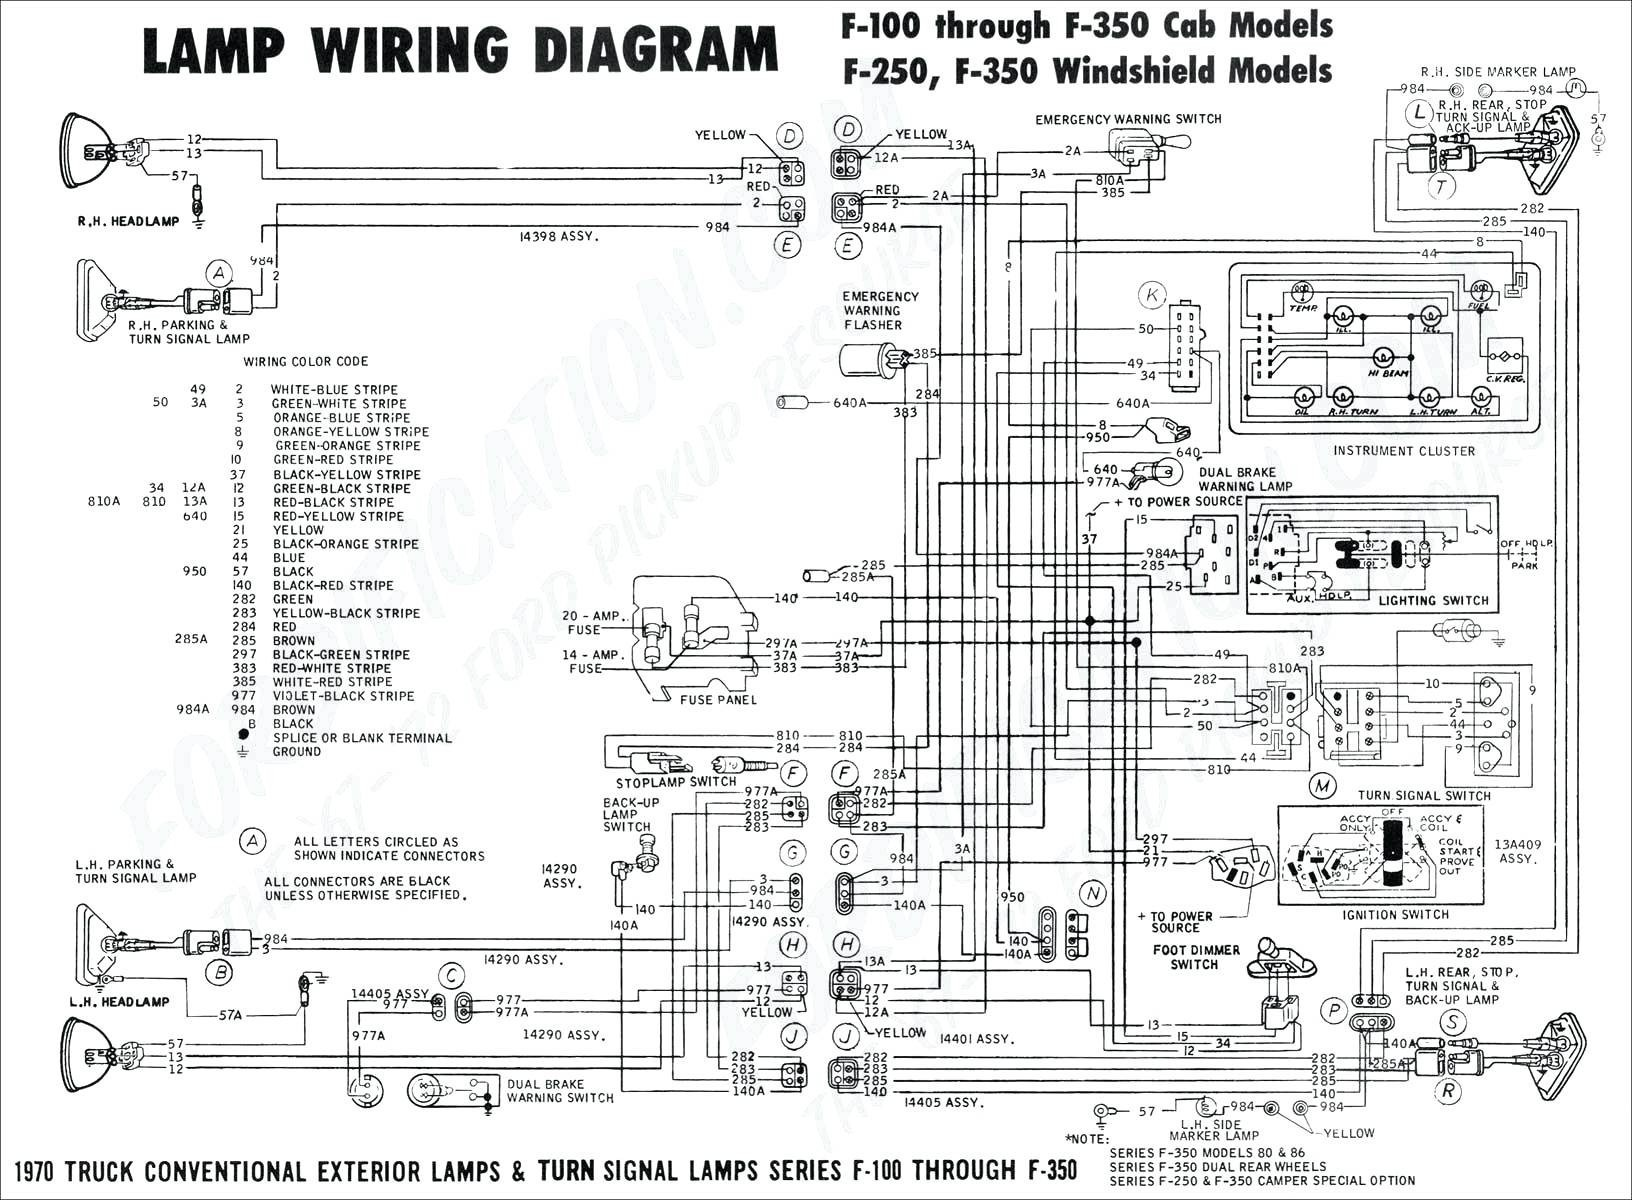 1995 ford F150 Parts Diagram 1997 ford F100 Wiring Wiring Diagram • Of 1995 ford F150 Parts Diagram 1997 ford F 150 Cruise Control Wiring Diagram Trusted Wiring